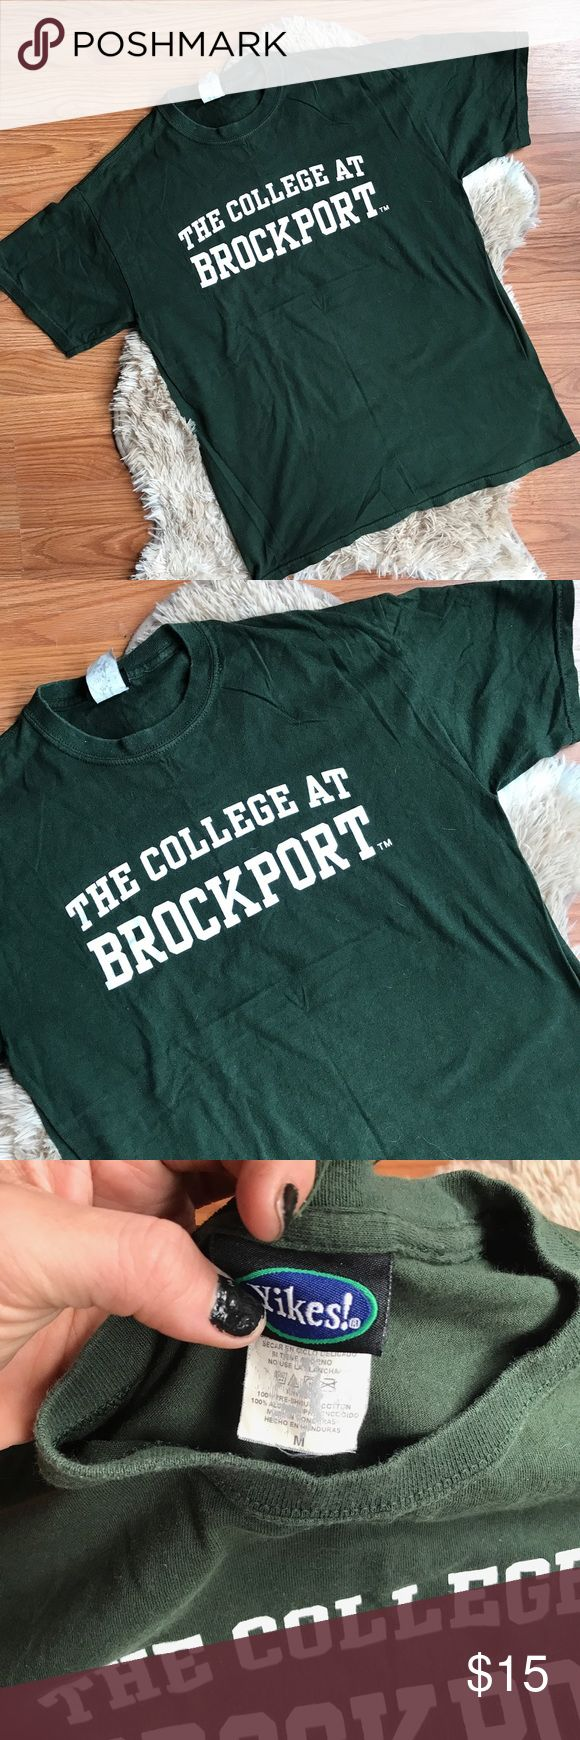 vintage • dark green university logo t-shirt DARK HUNTER GREEN THE COLLEGE AT BROCKPORT GRAPHIC T-SHIRT • size medium • excellent vintage condition; no holes stains, cracking or discoloration  • just in time for back to school! ----- #collegetee #suny #brockport #classictee #vintagetee #vintagetshirt #vintage #vtg Vintage Tops Tees - Short Sleeve